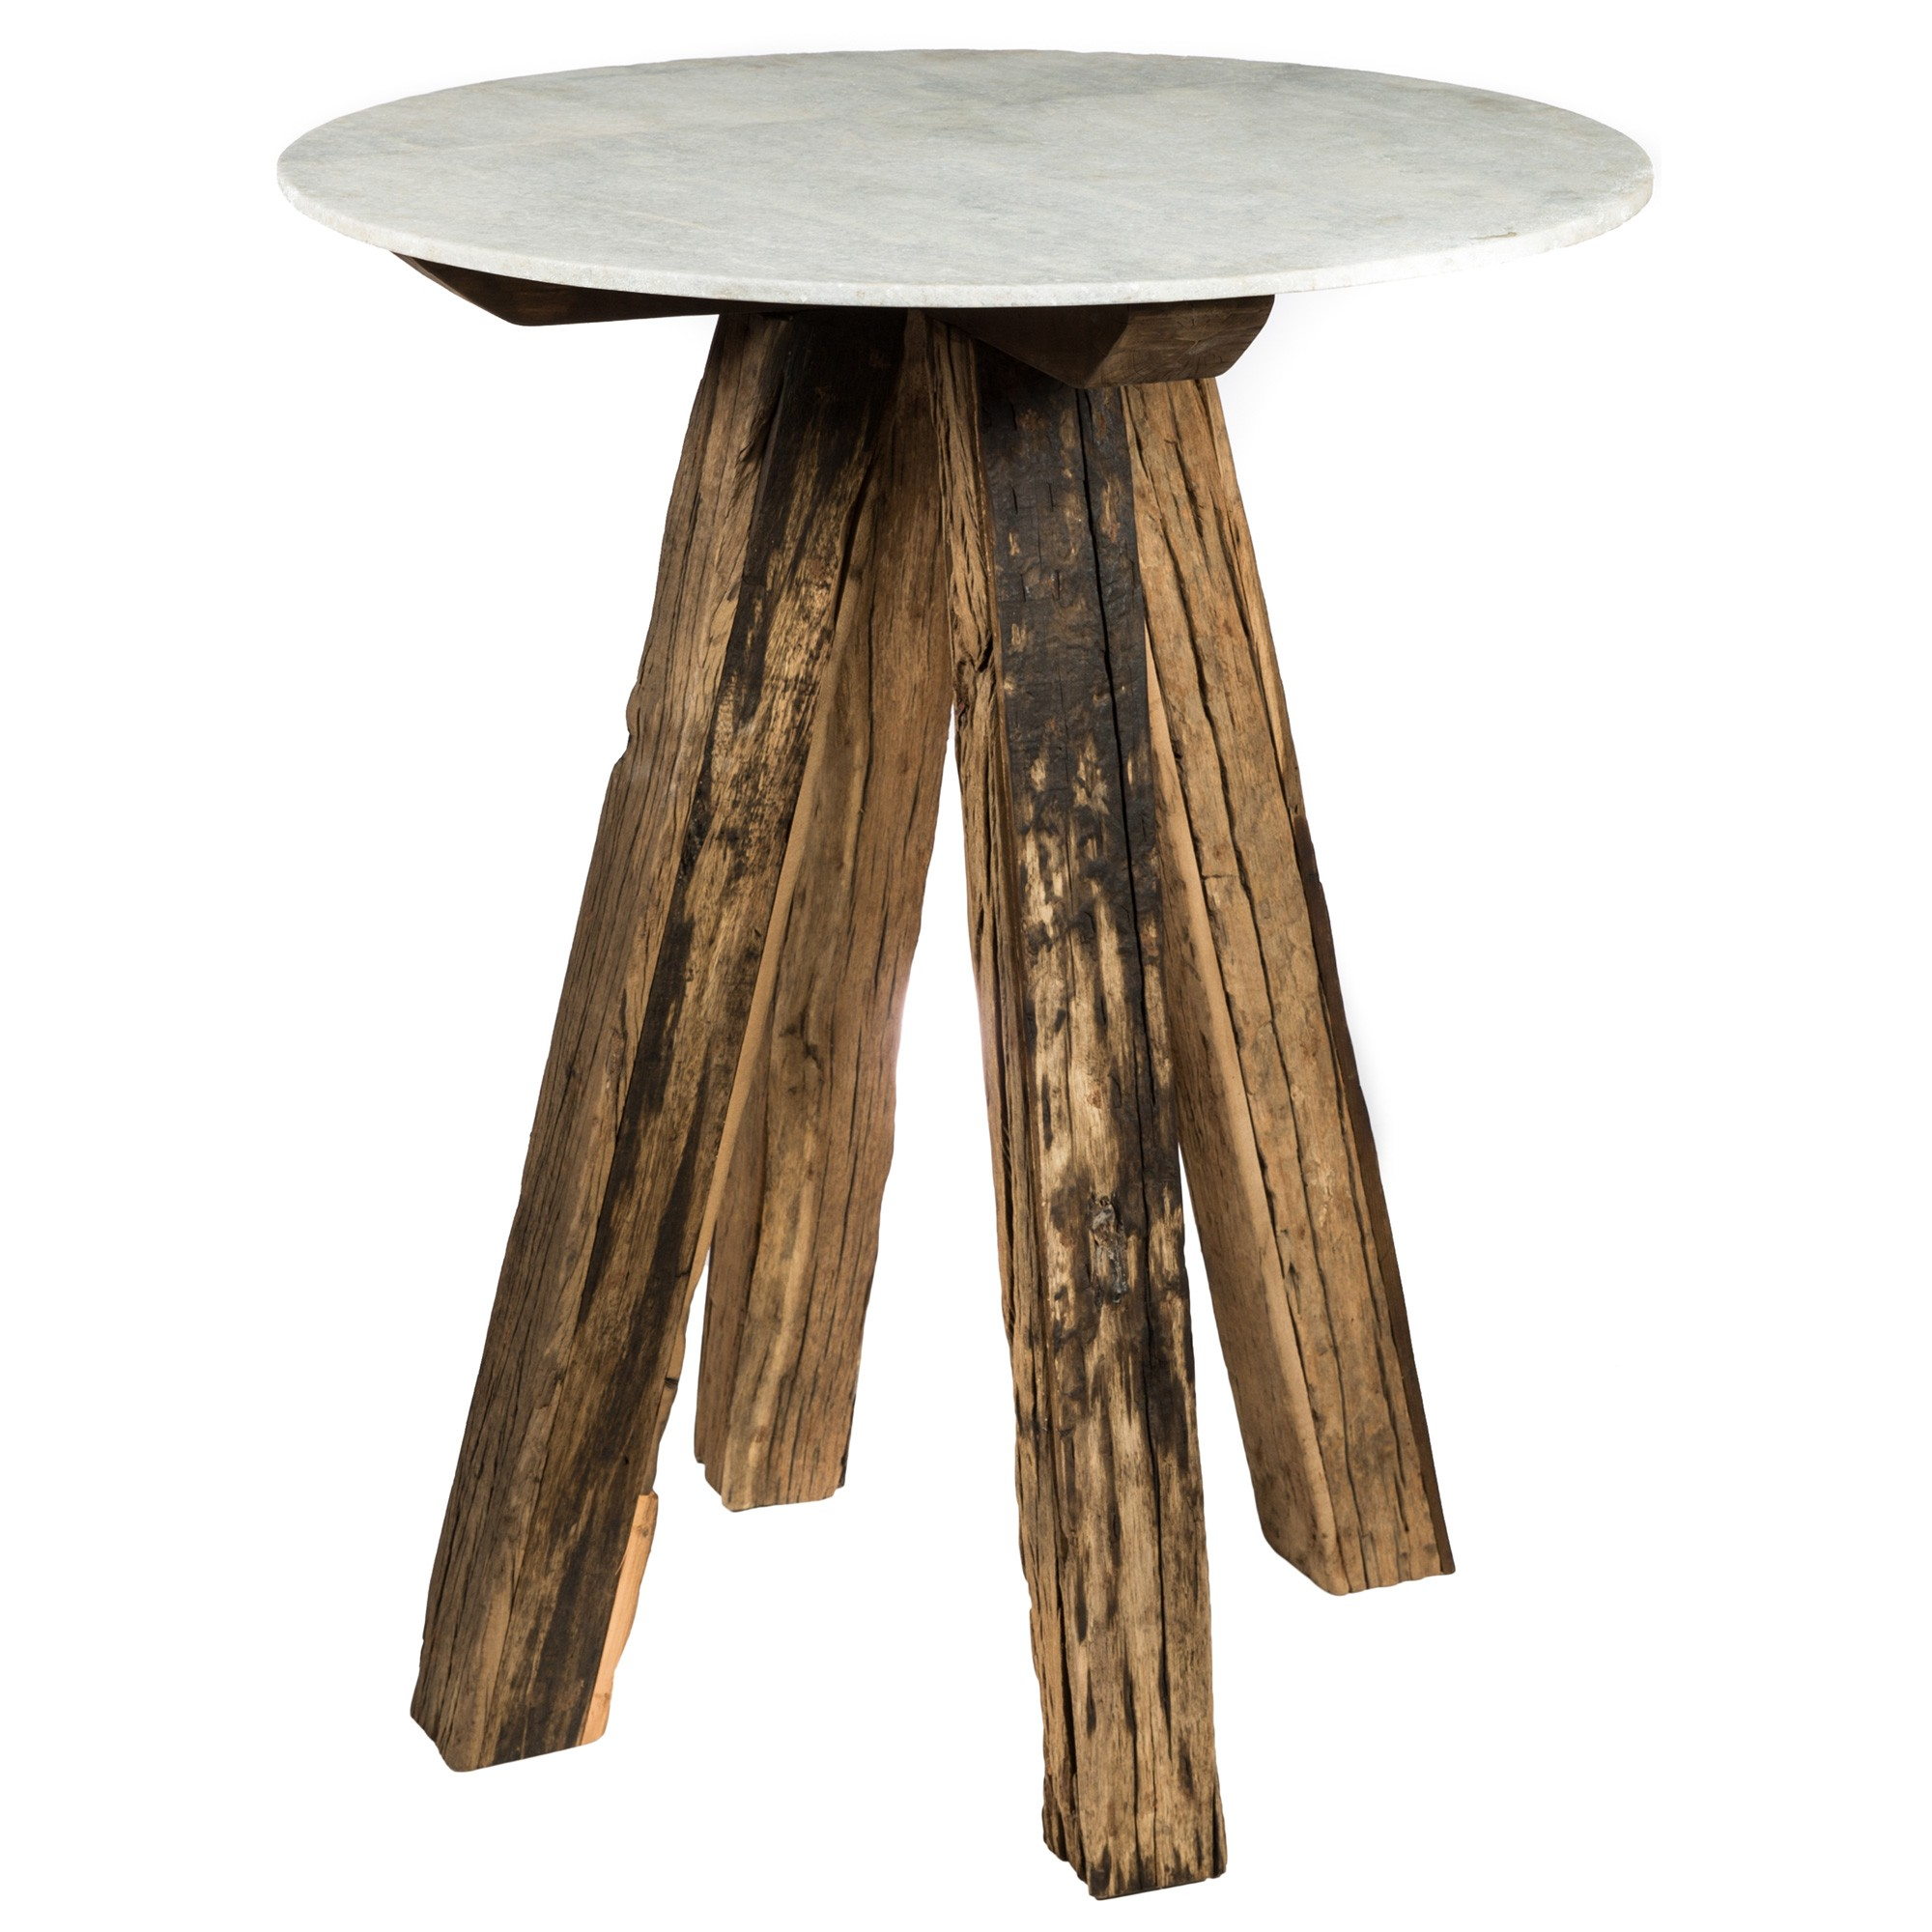 Cape Cod Stone & Reclaimed Timber Bar Table, Round, 90cm, White